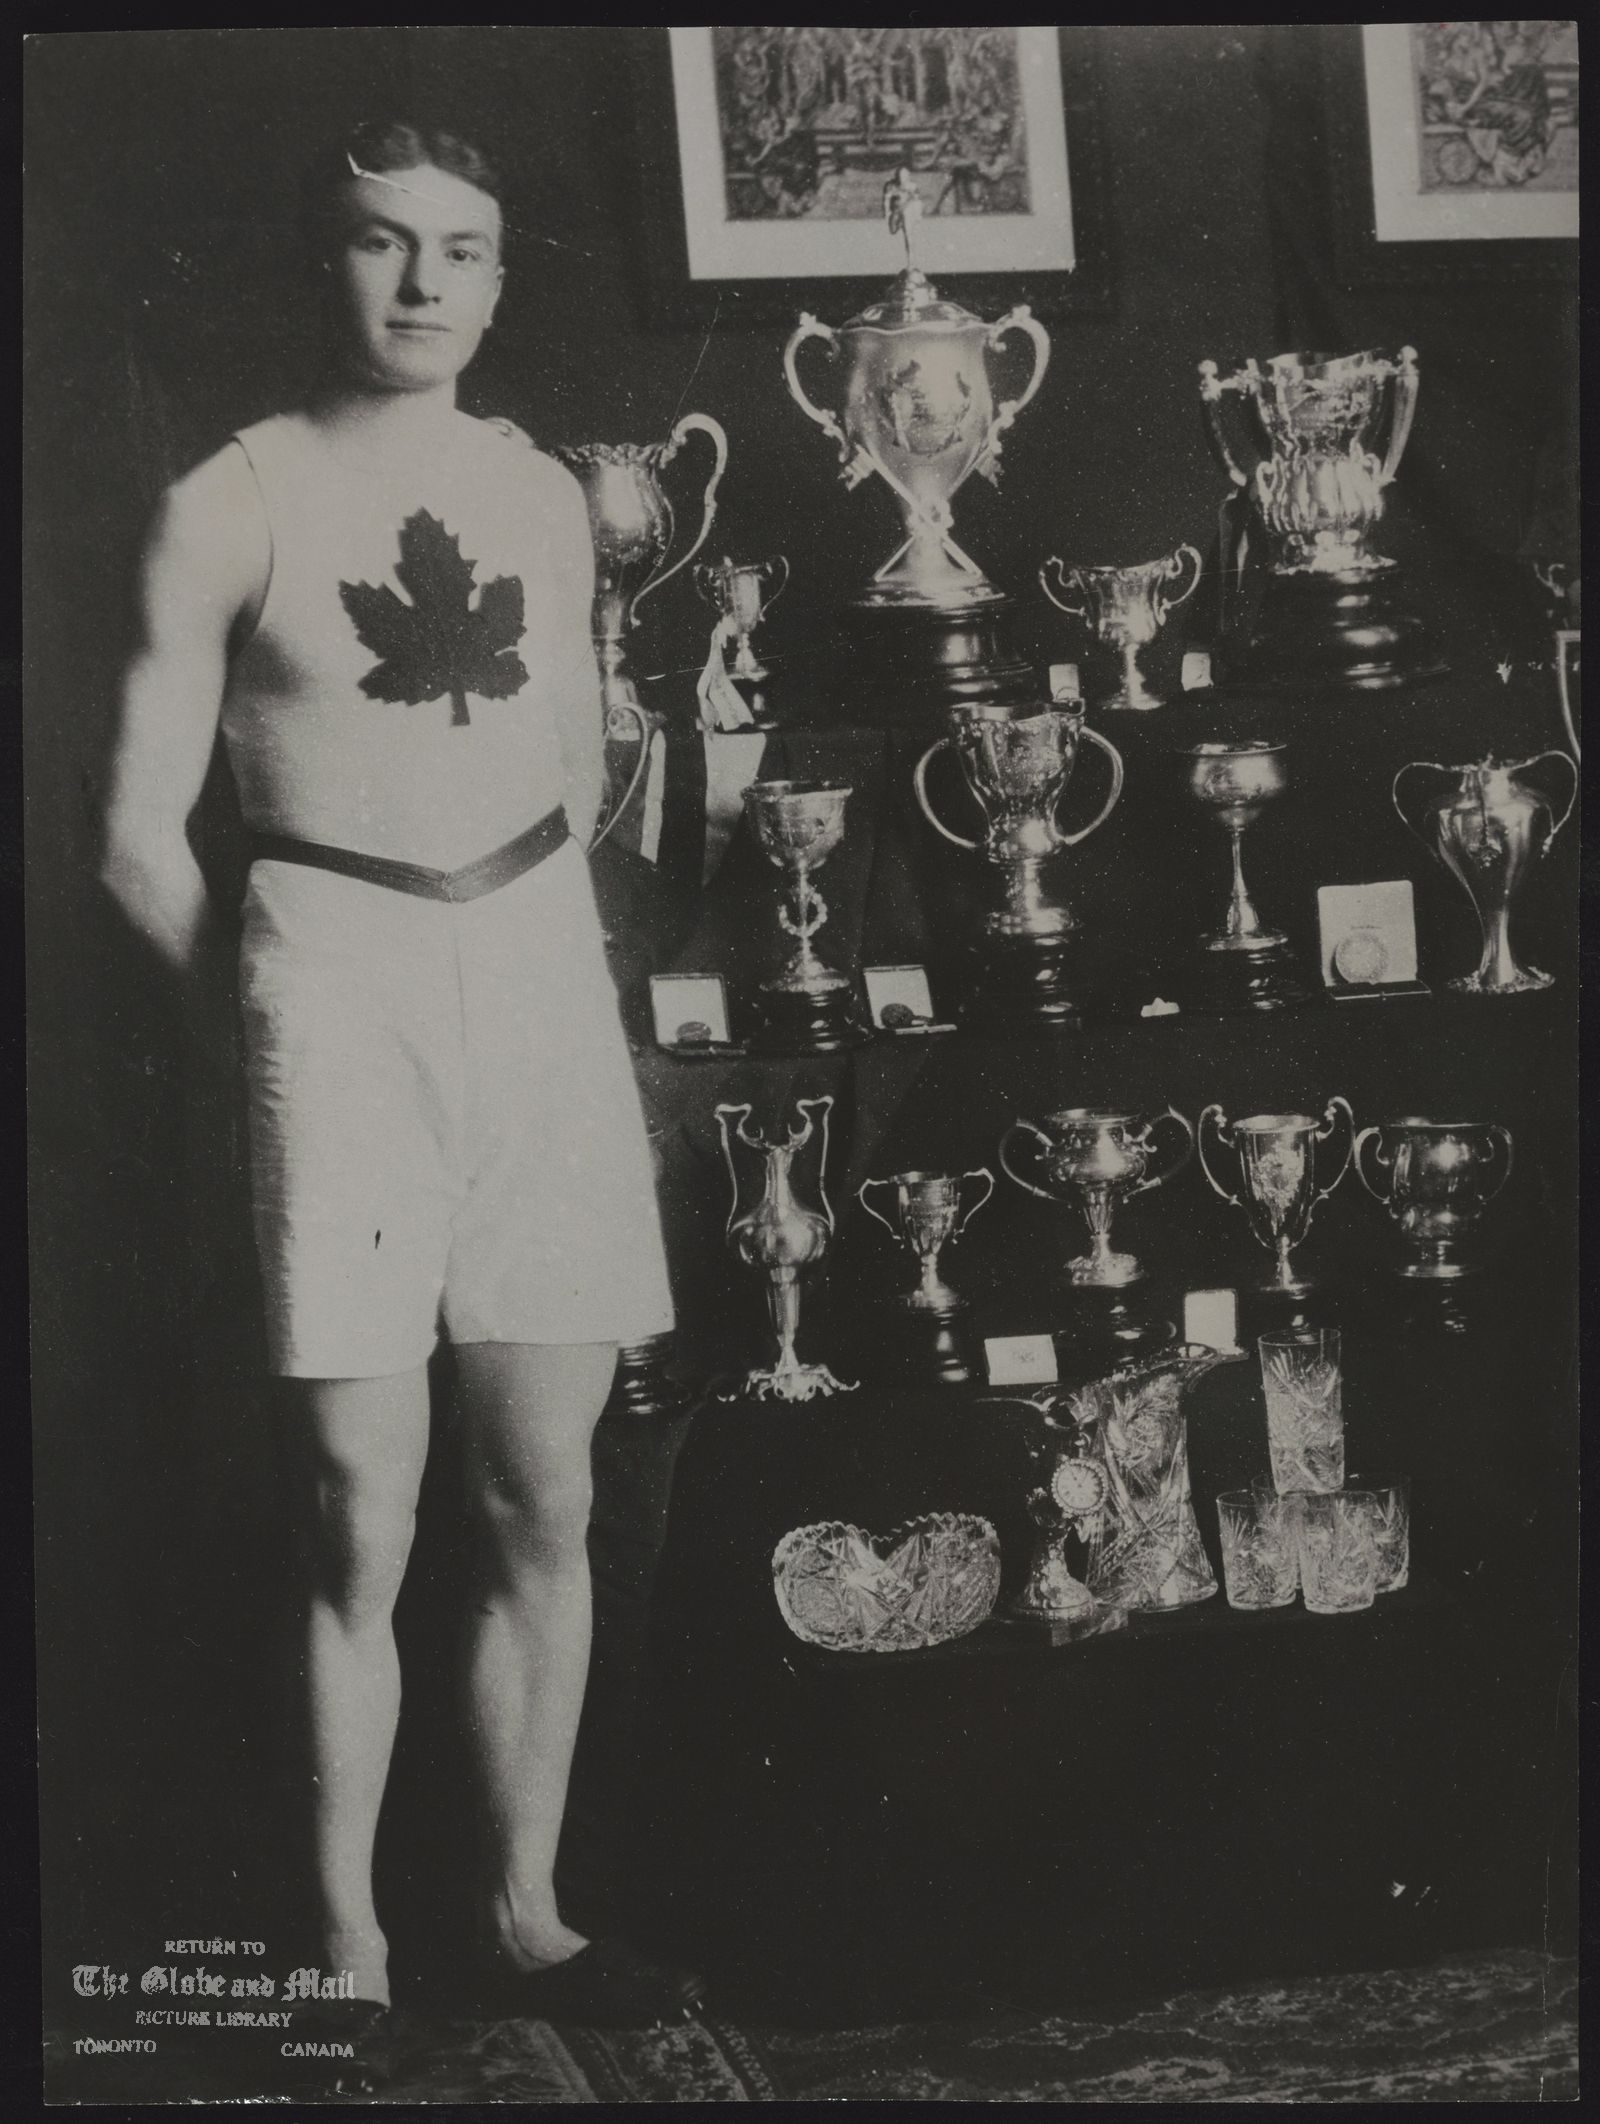 Bobby KERR - circa 1908 photo. Athlete Died May 12, 1963 [Irish Canadian sprinter, he won the gold medal in the 200 metres and the bronze medal in the 100 metres at the 1908 Summer Olympics.